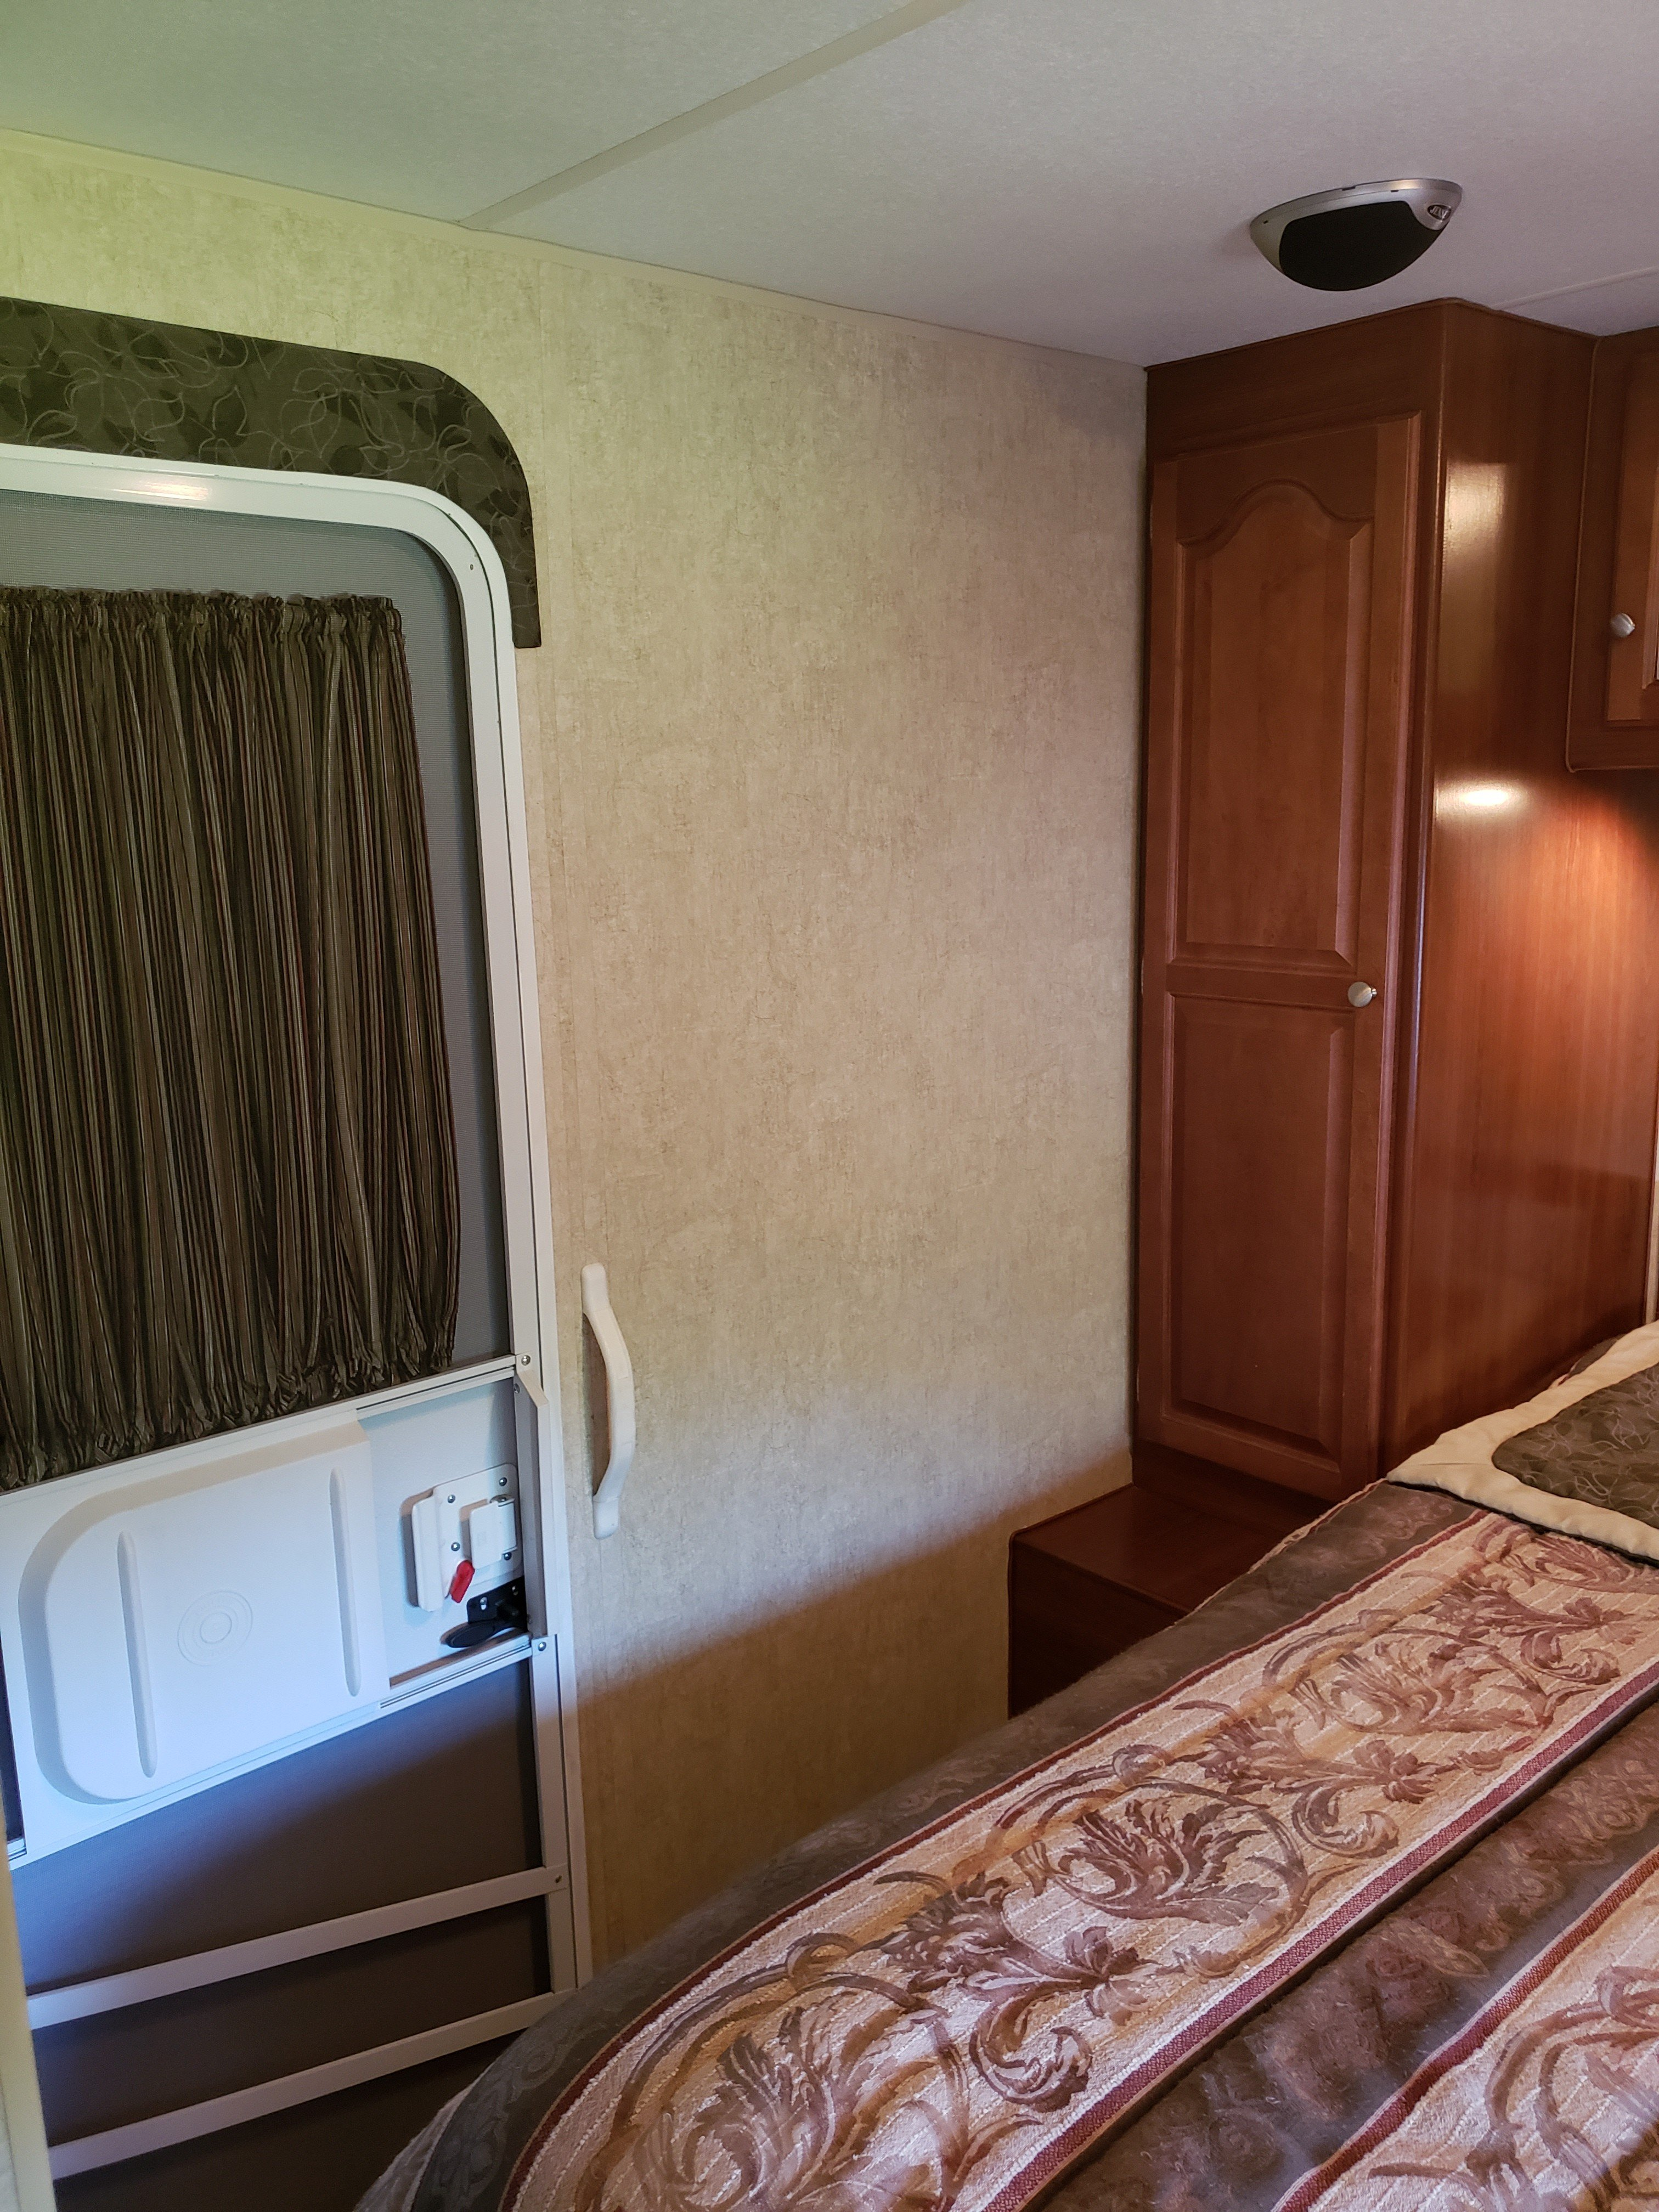 Fleetwood Travel Trailer Rvs For Sale On Autotrader Prowler Regal Wiring Diagram Free Picture